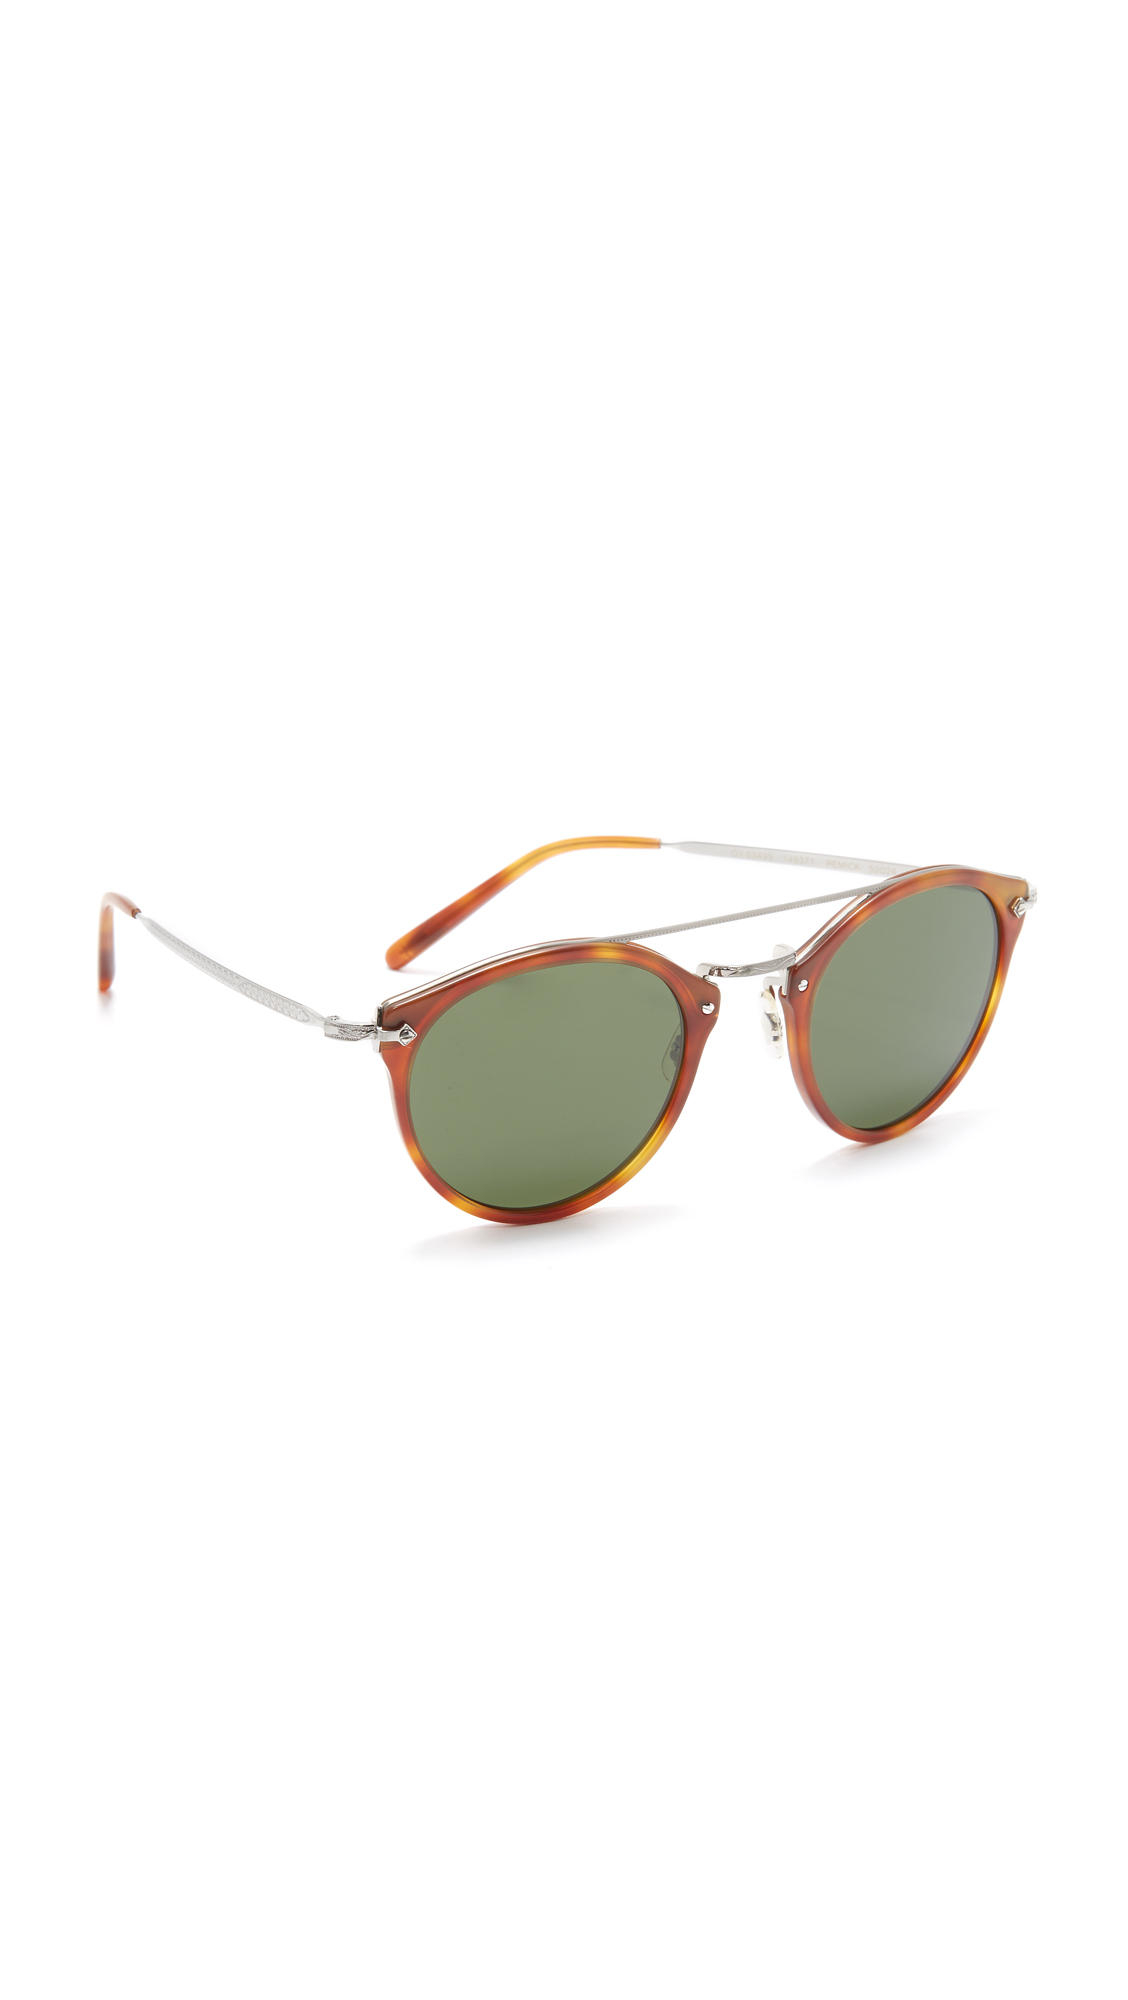 Oliver Peoples Eyewear Remick Sunglasses | SHOPBOP